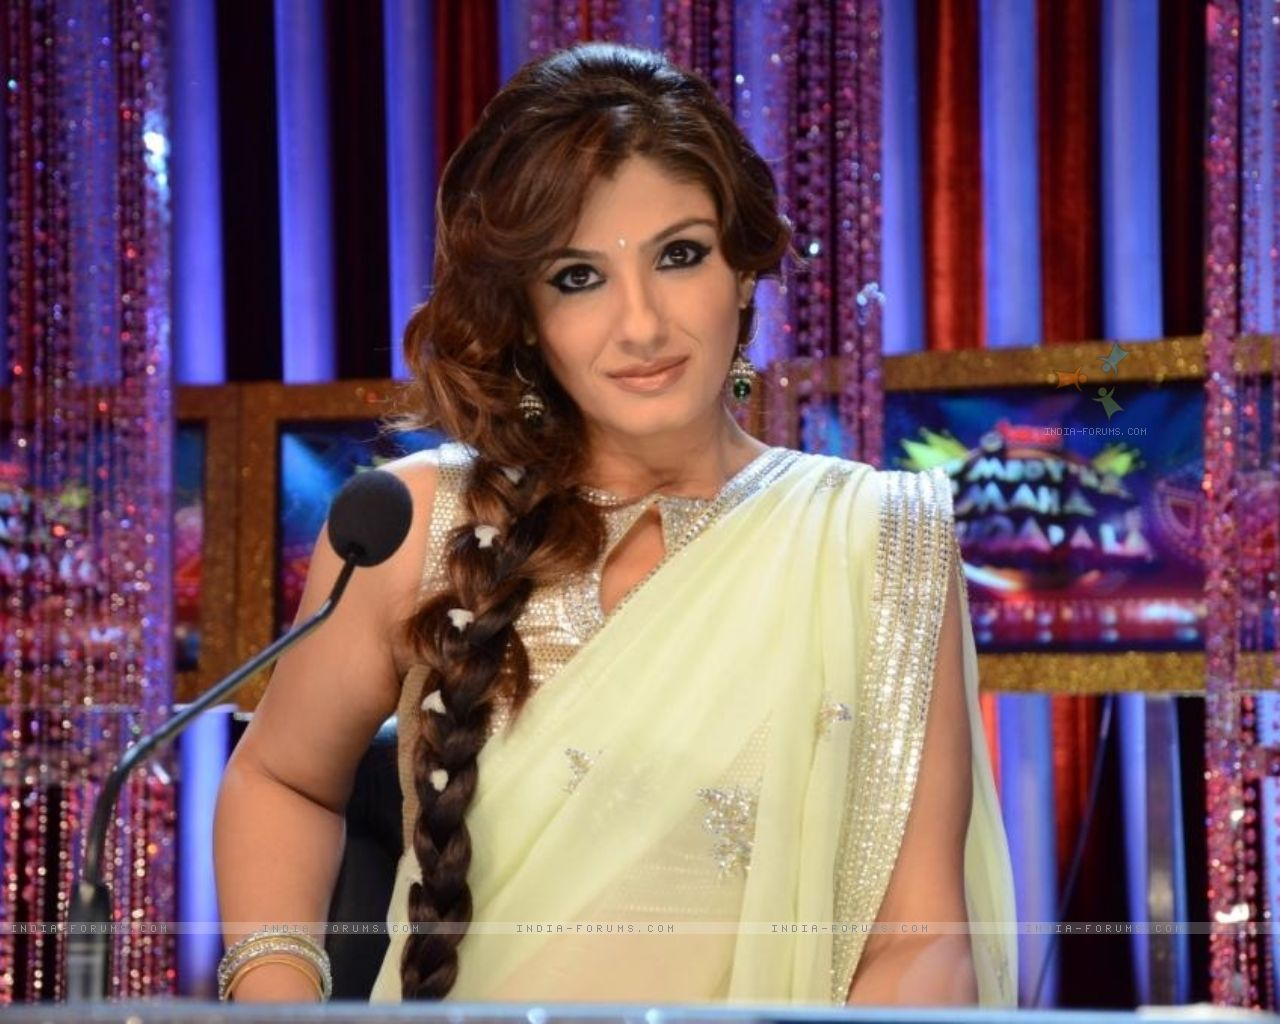 Bollywood Celebrities Raveena Tandon Hot, Sexy Wallpapers-8173